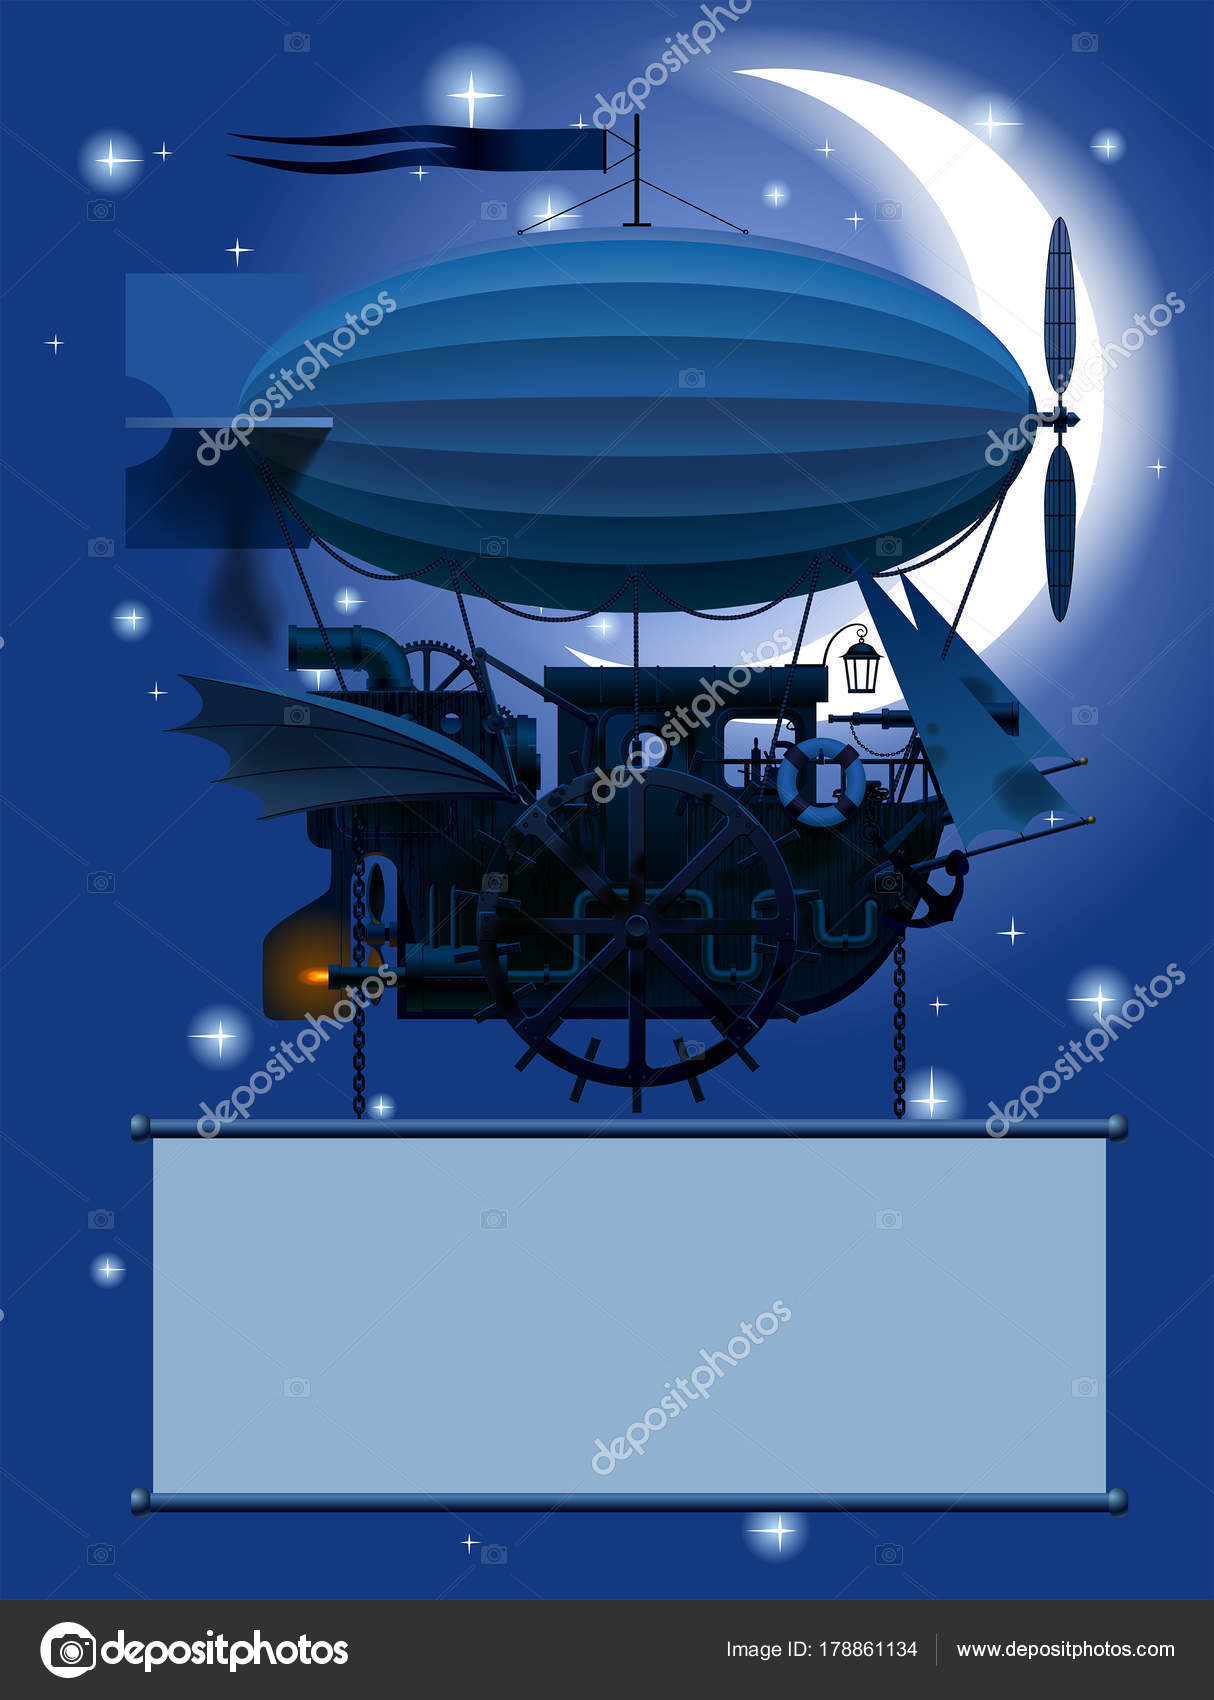 vintage steampunk template with a fantastic flying ship in night sky